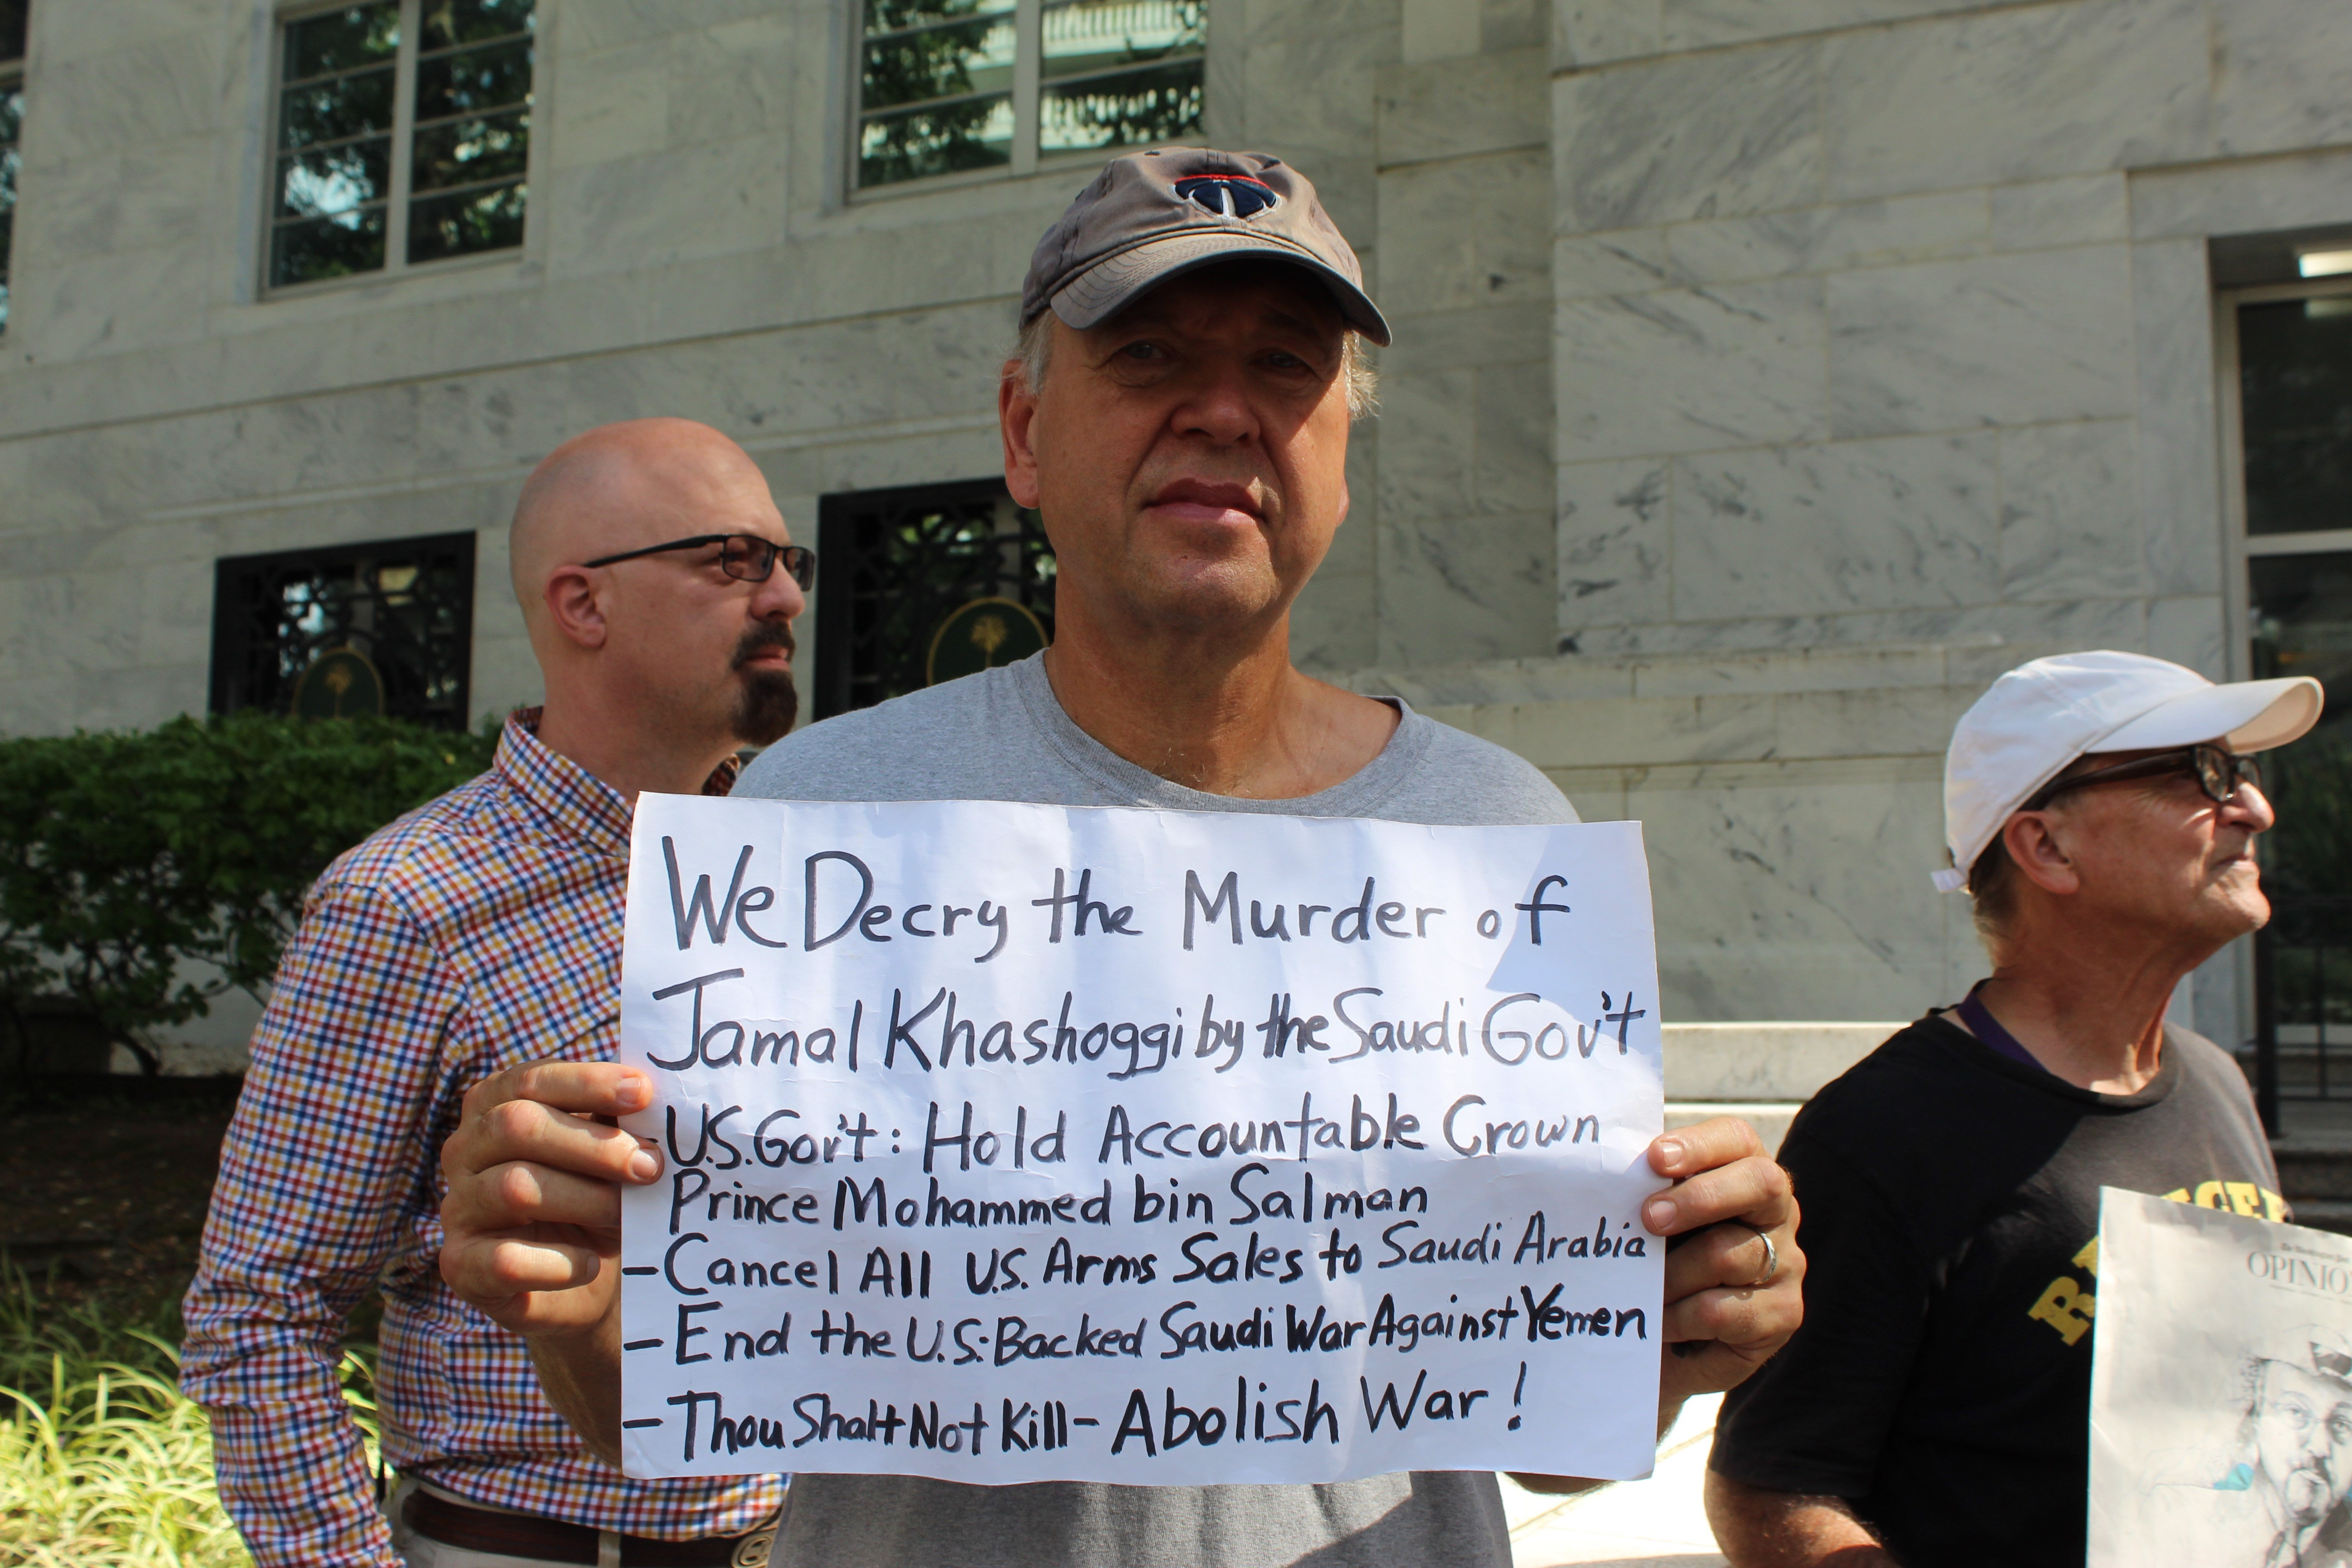 Martin Laffin holds a sign, asking the US government to hold Saudi Arabia accountable for the 2018 murder of Jamal Khashoggi on 2 October 2019 (MEE/Sheren Khalel)